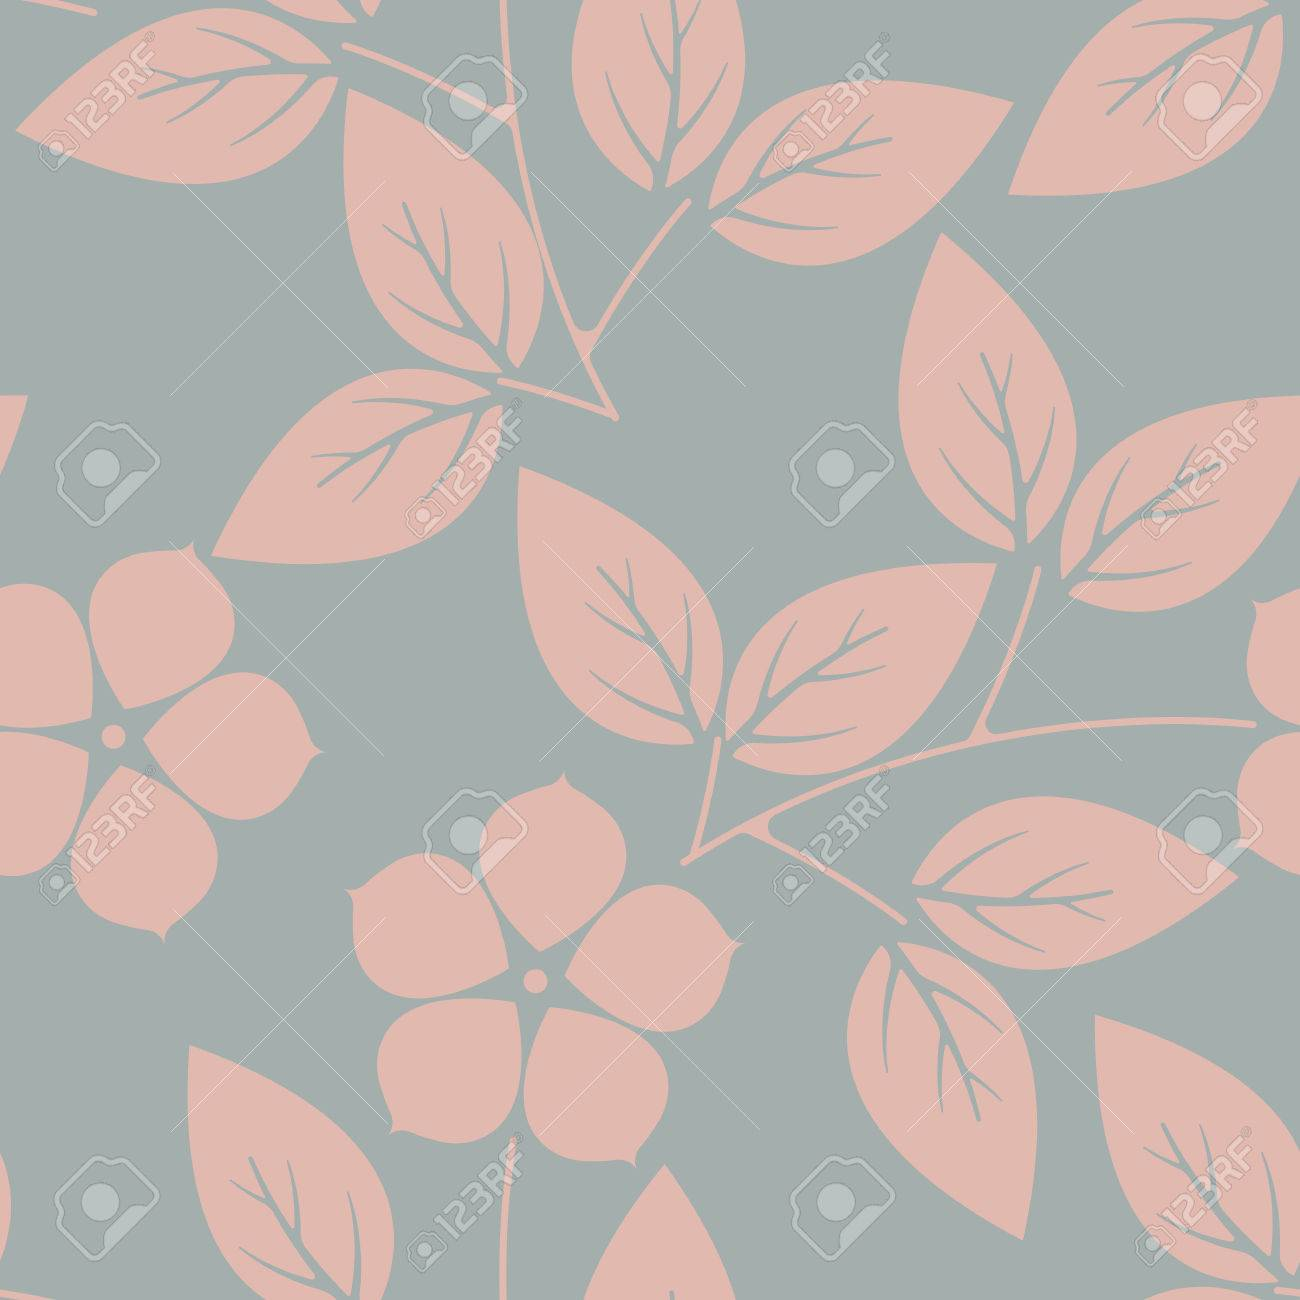 Stylish Endless Pattern With Pink Flowers And Leaves On Grey